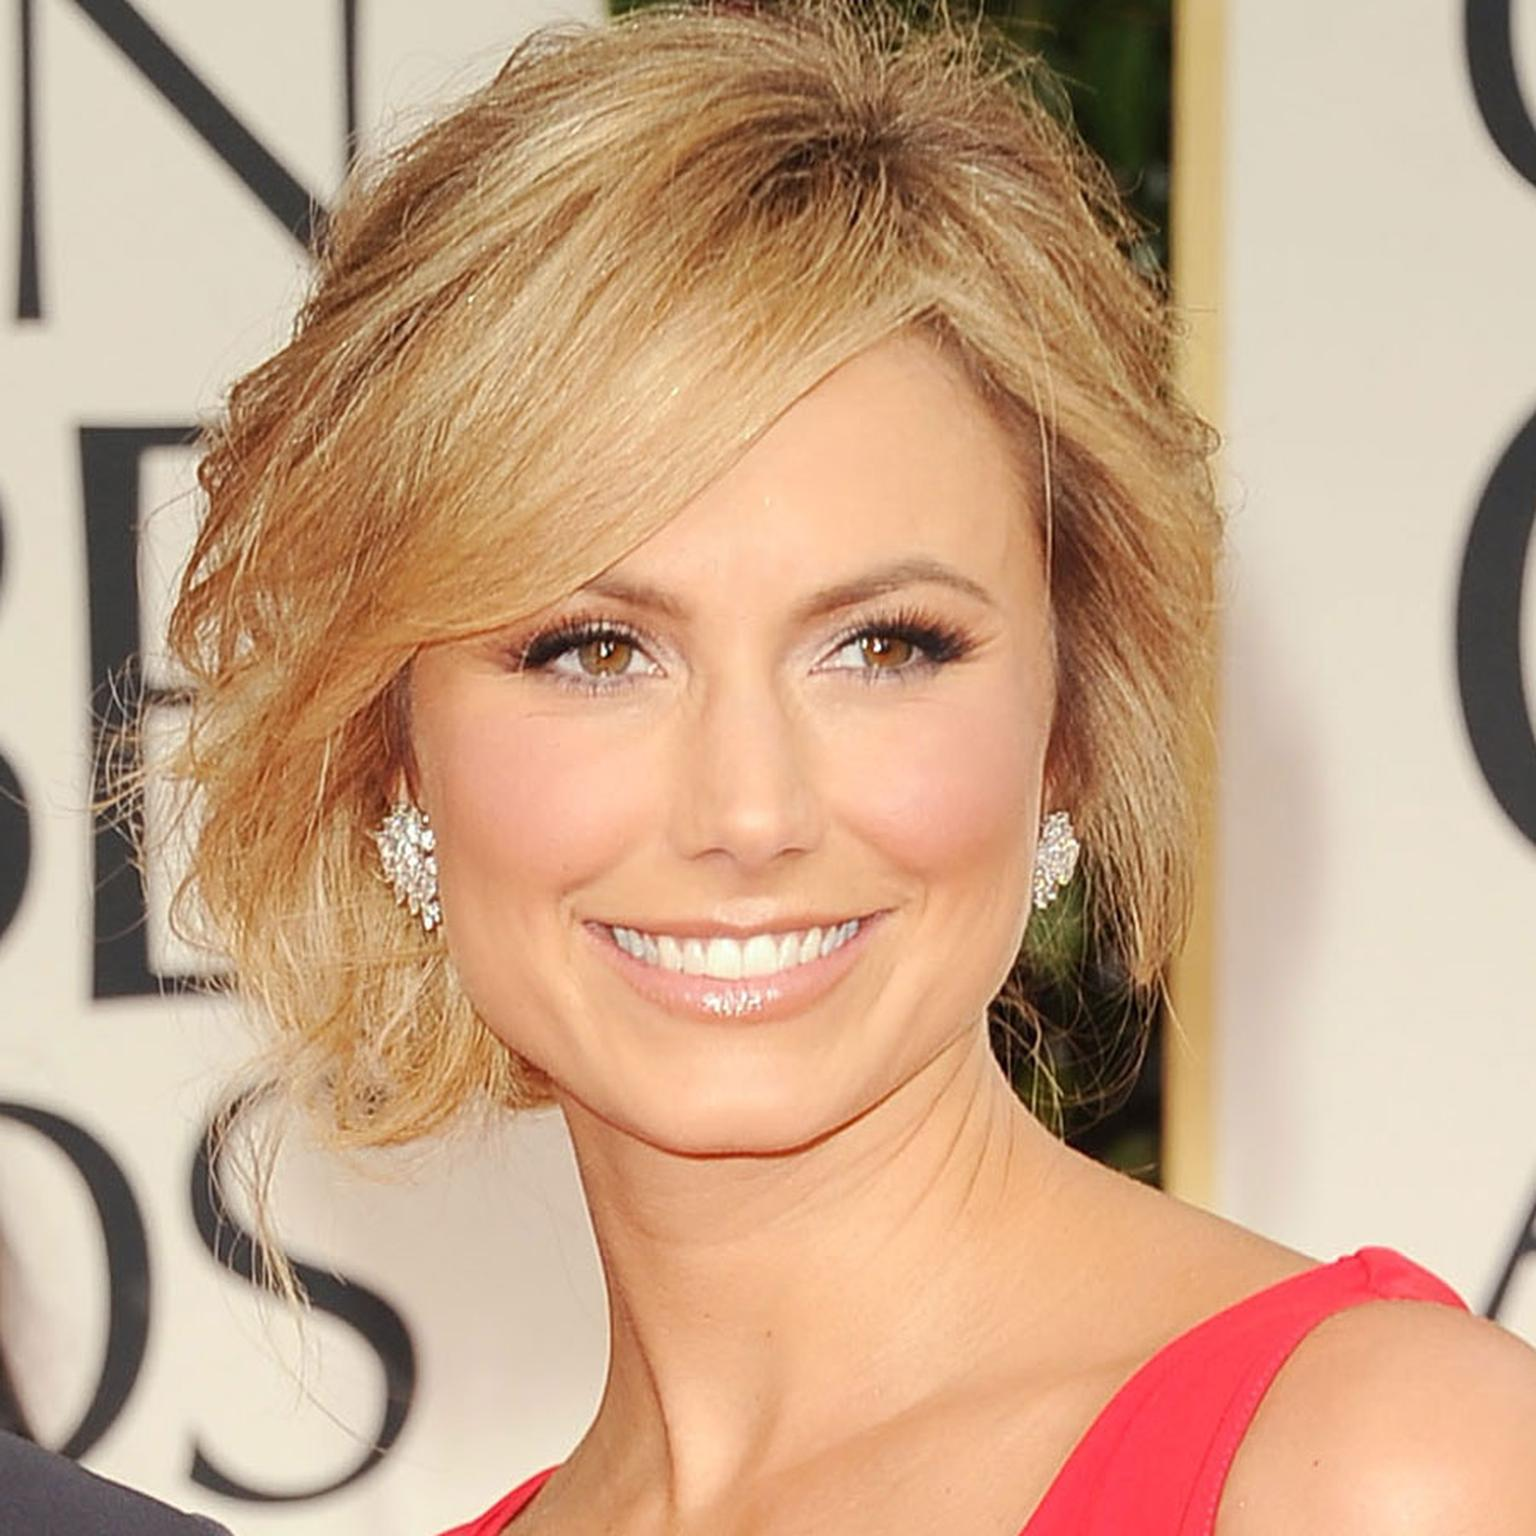 Stacy-Keibler-wearing-Chopard-MAINPICjpg